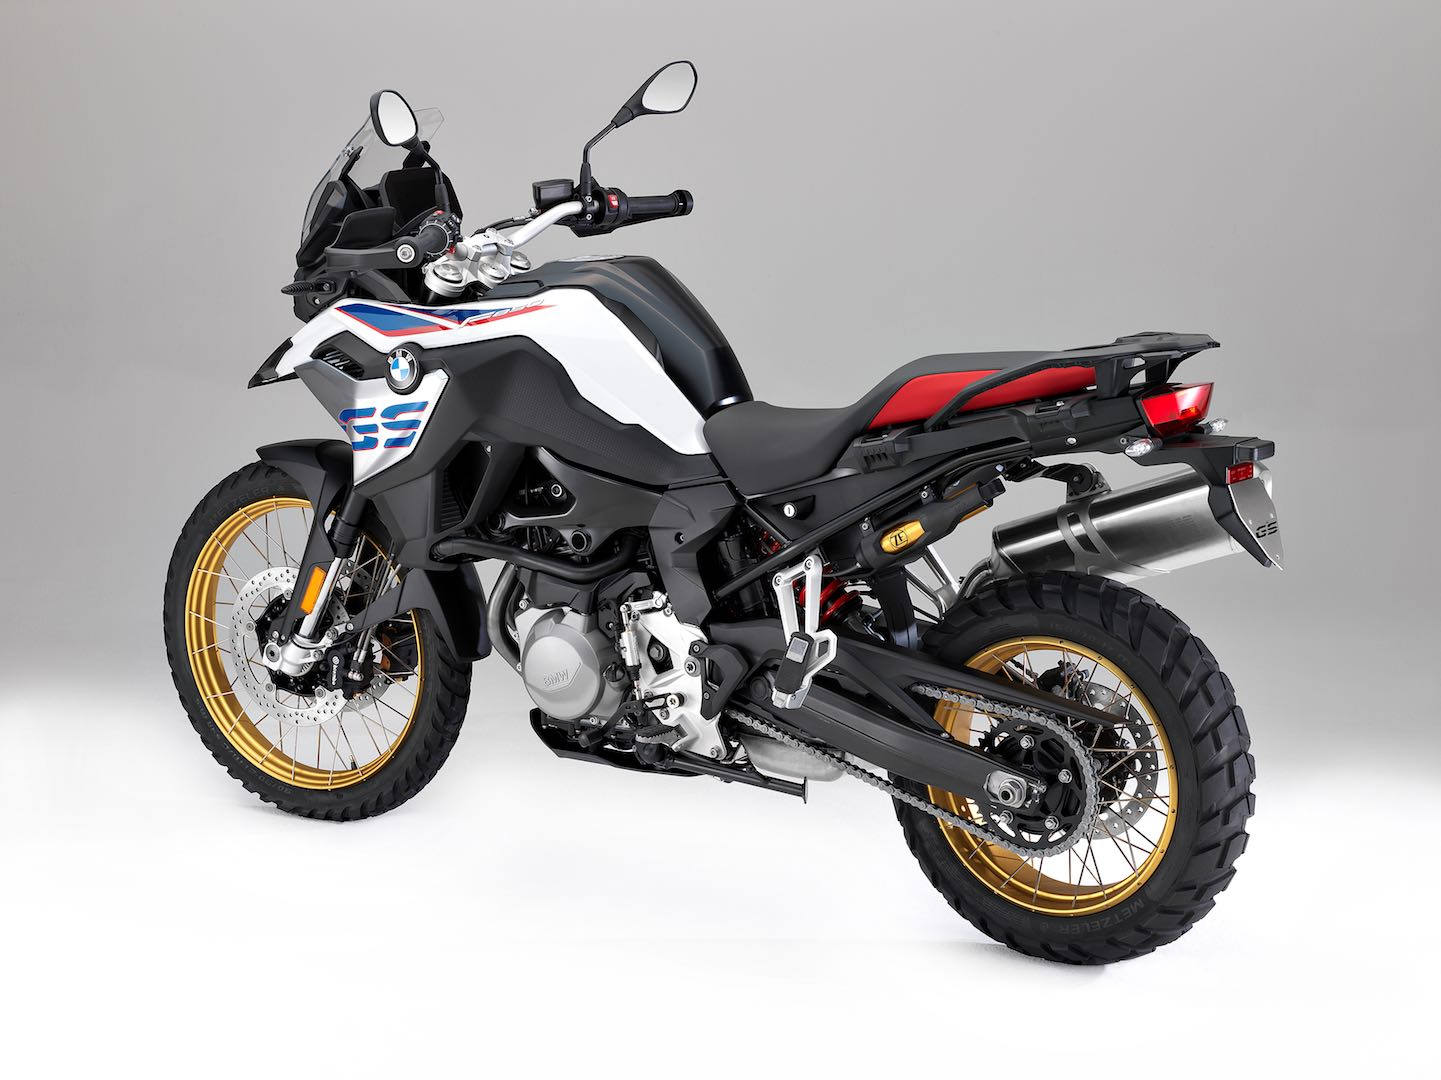 2018 bmw f 850 gs and f 750 gs first looks 12 fast facts. Black Bedroom Furniture Sets. Home Design Ideas